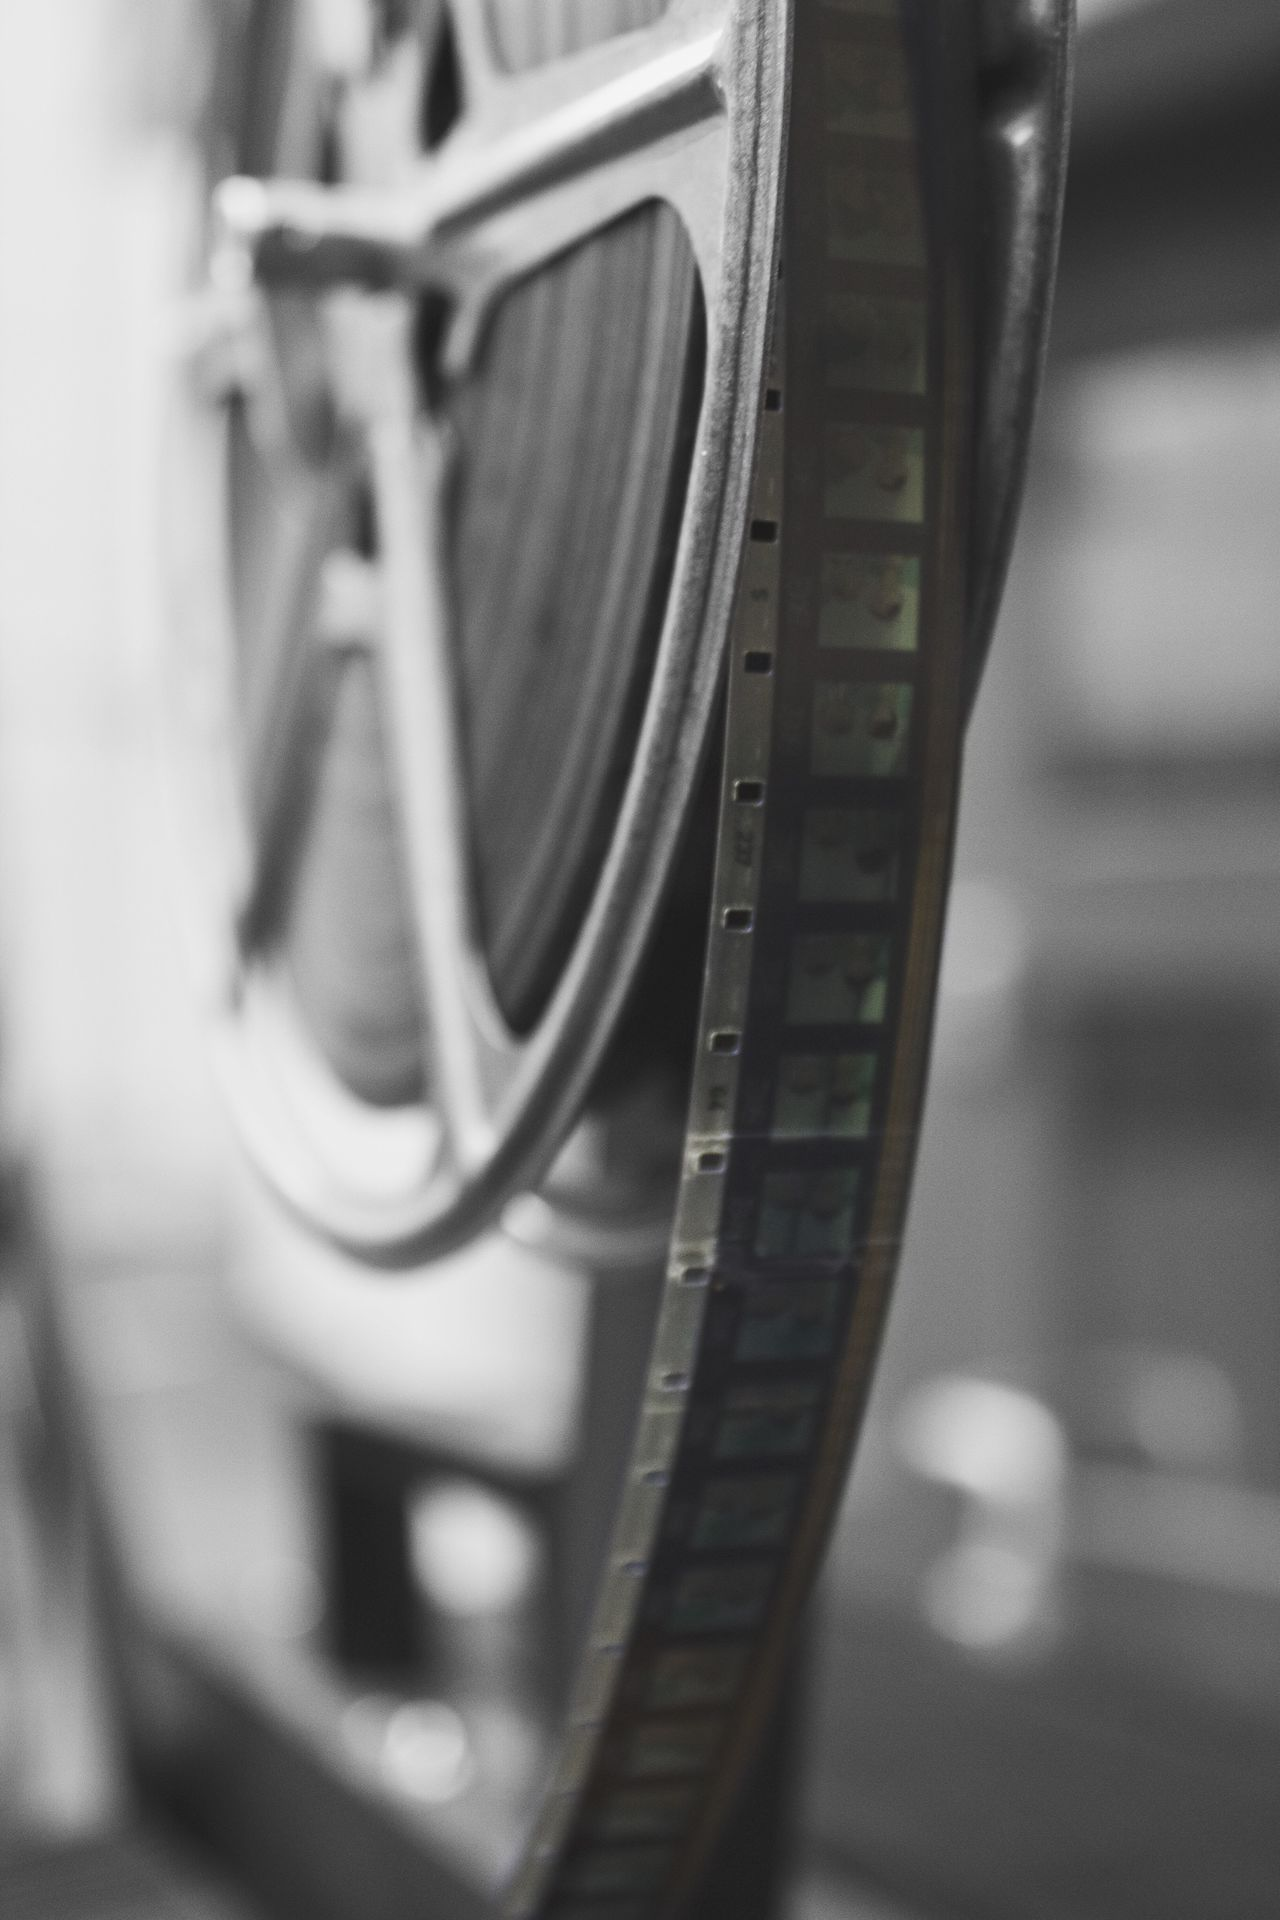 Close-up of film reel in industry